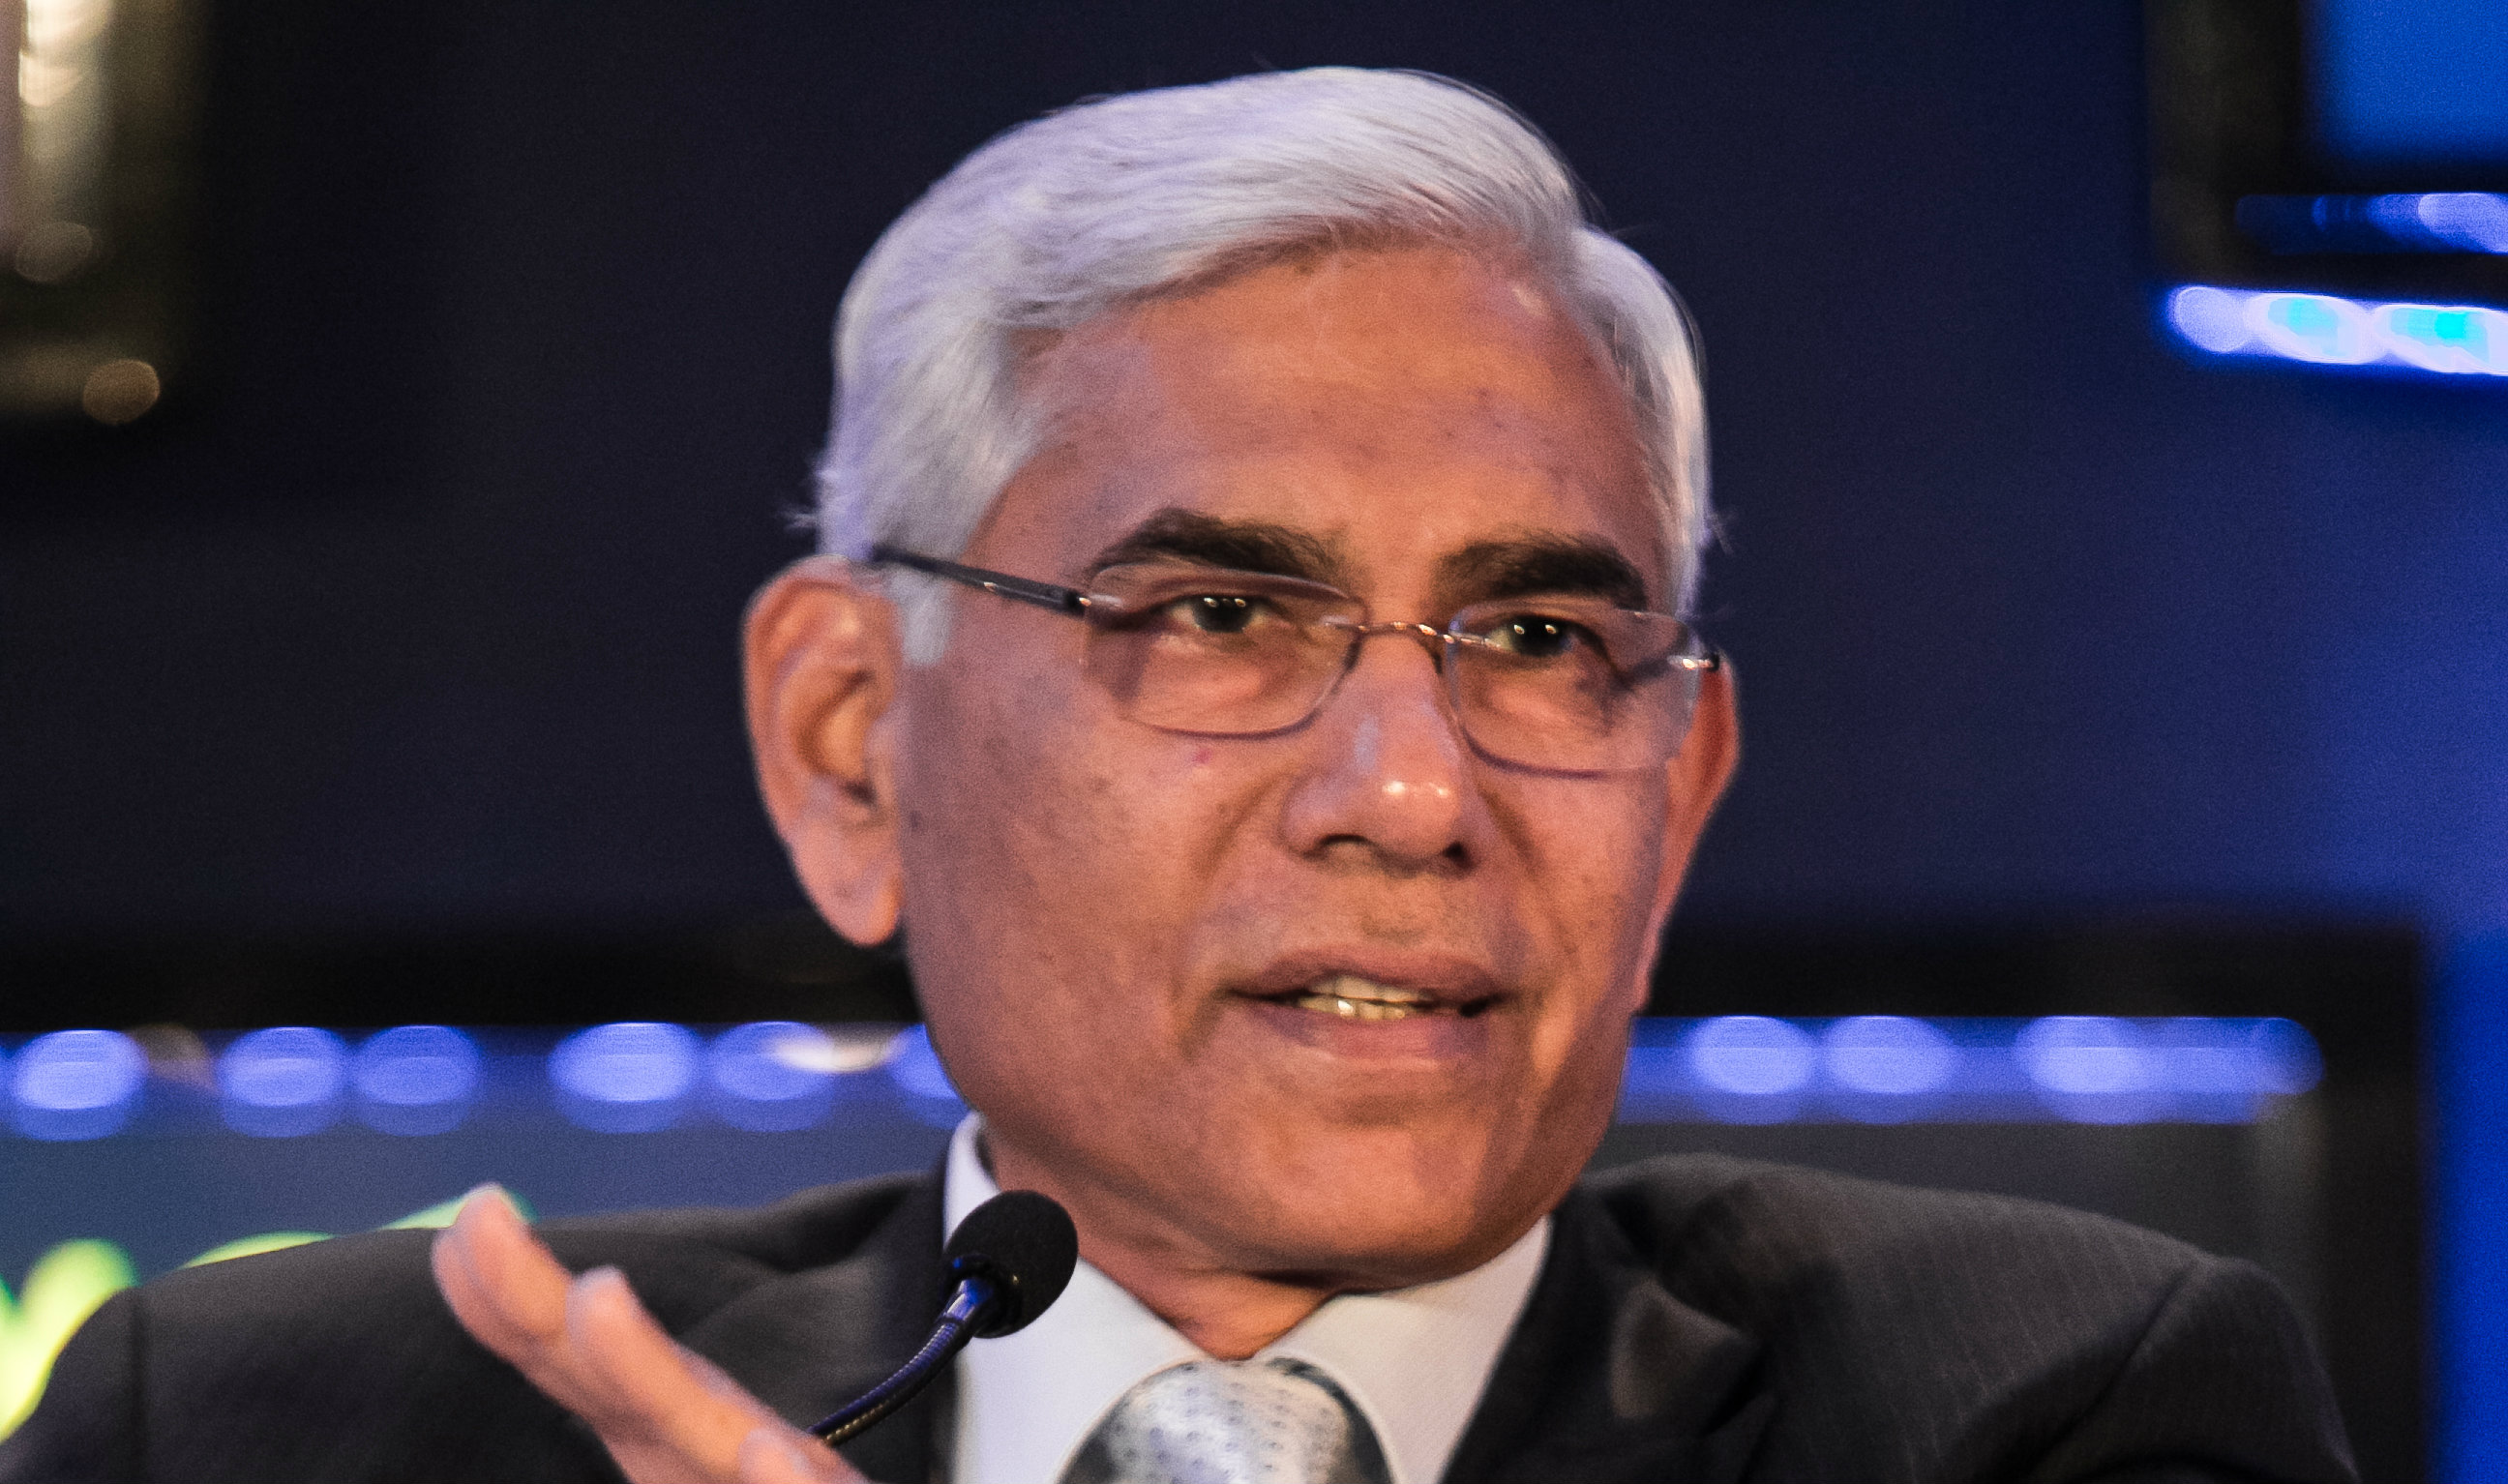 The BCCI's change of mind is an indication that Johri got the go-ahead from the Supreme Court-appointed Committee of Administrators (CoA), headed by Vinod Rai (in picture), to sign the agreement.